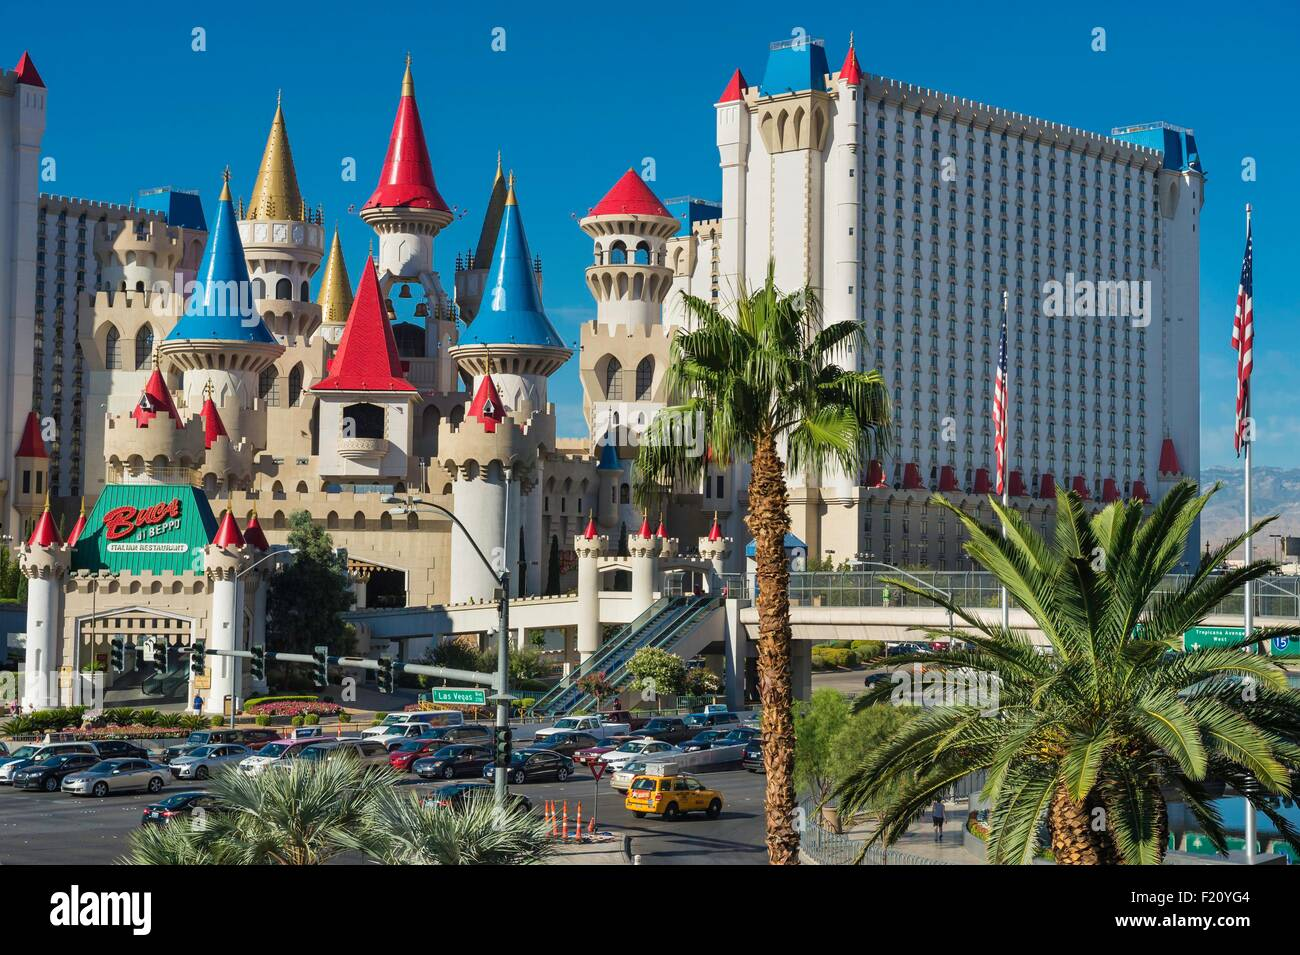 United States, Nevada, Las Vegas, the Strip, Excalibur hotel and casino - Stock Image